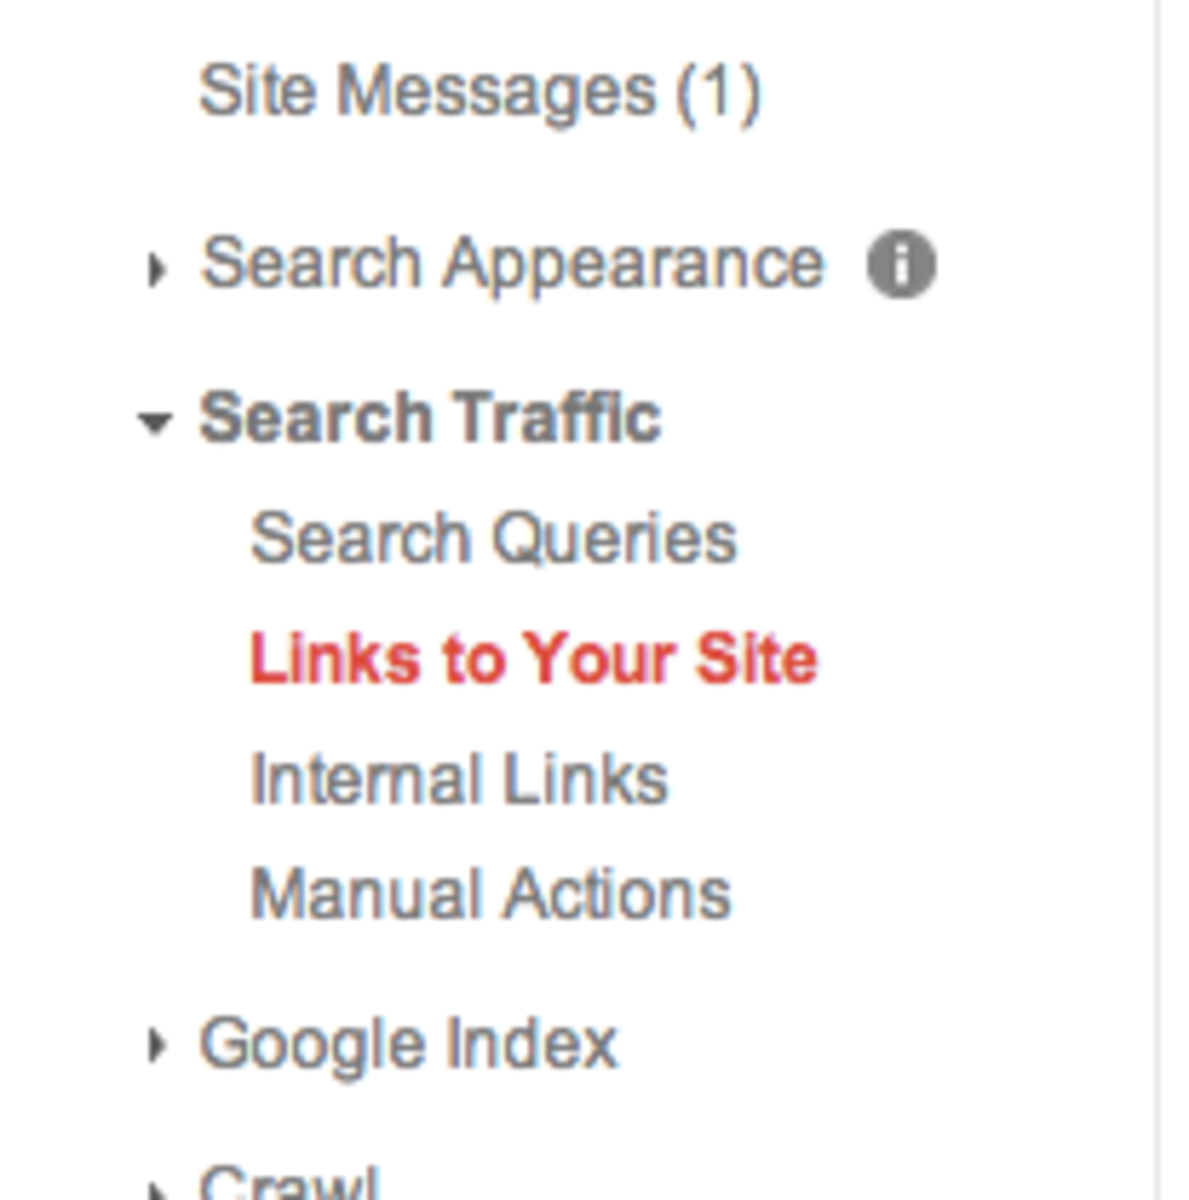 Search Traffic   Links to Your Site